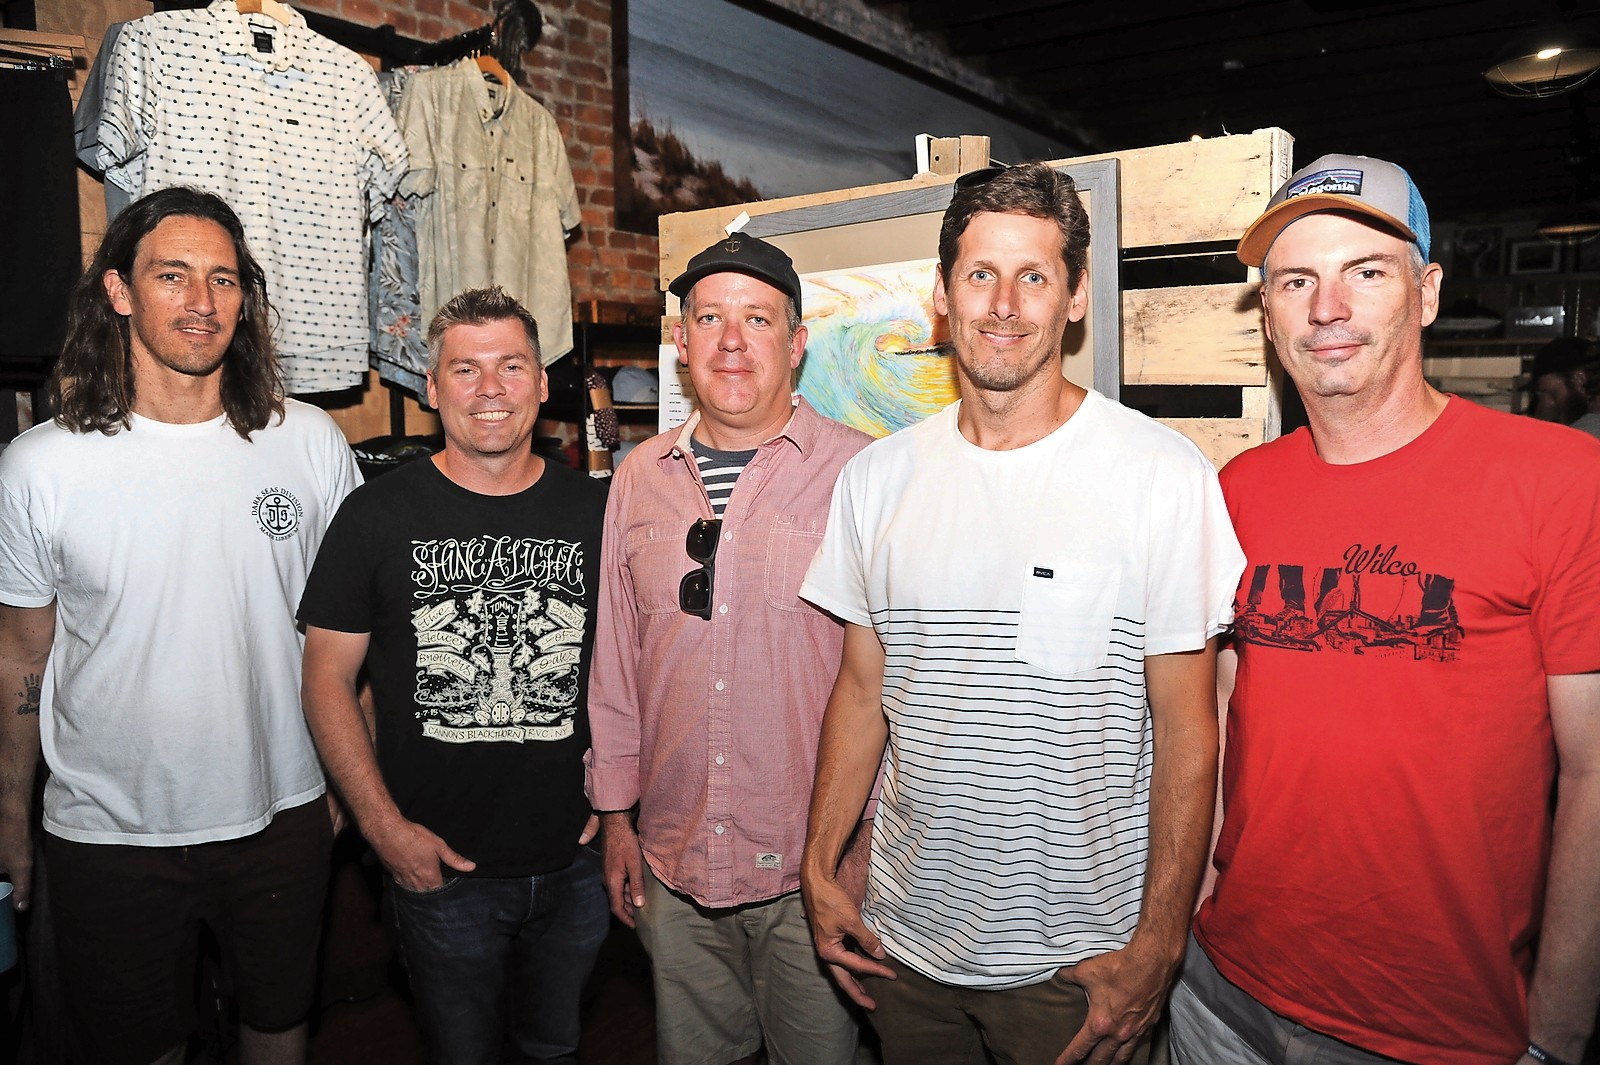 Unsound co-owner Dave Juan, far left, Tommy Brull Foundation co-founders Martin Brull and Keith Lucchesi, Unsound co-owner Mike Nelson, and foundation co-owner Dr. John Brull at Unsound's annual surf art show and auction on June 11.